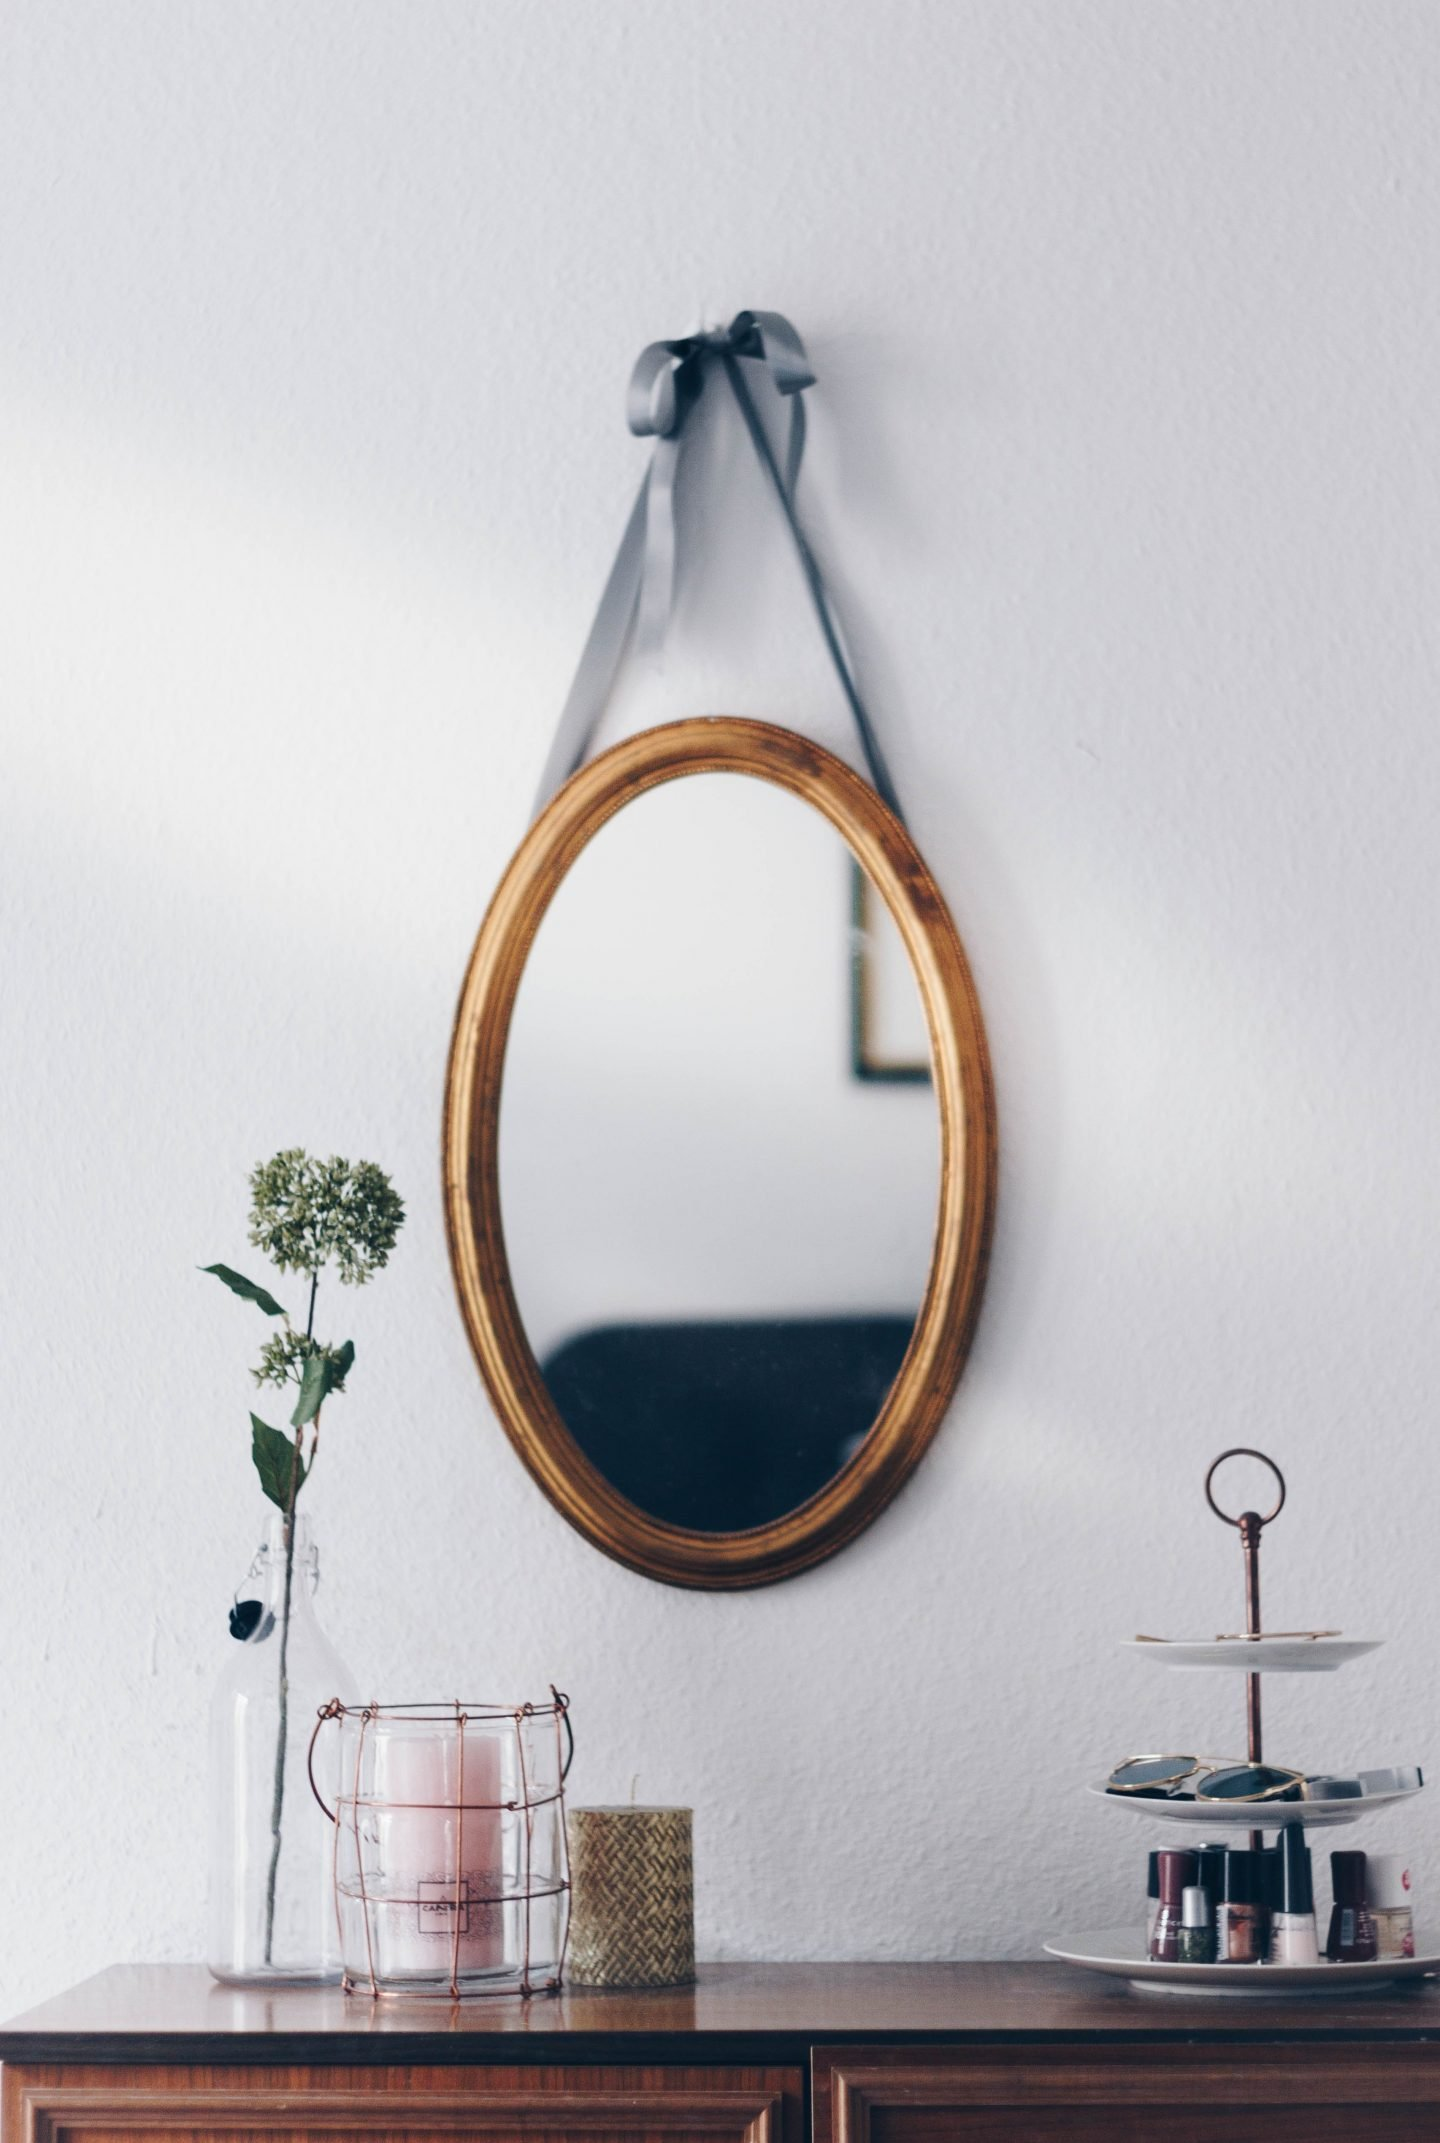 Makeup table and a round hanging mirror